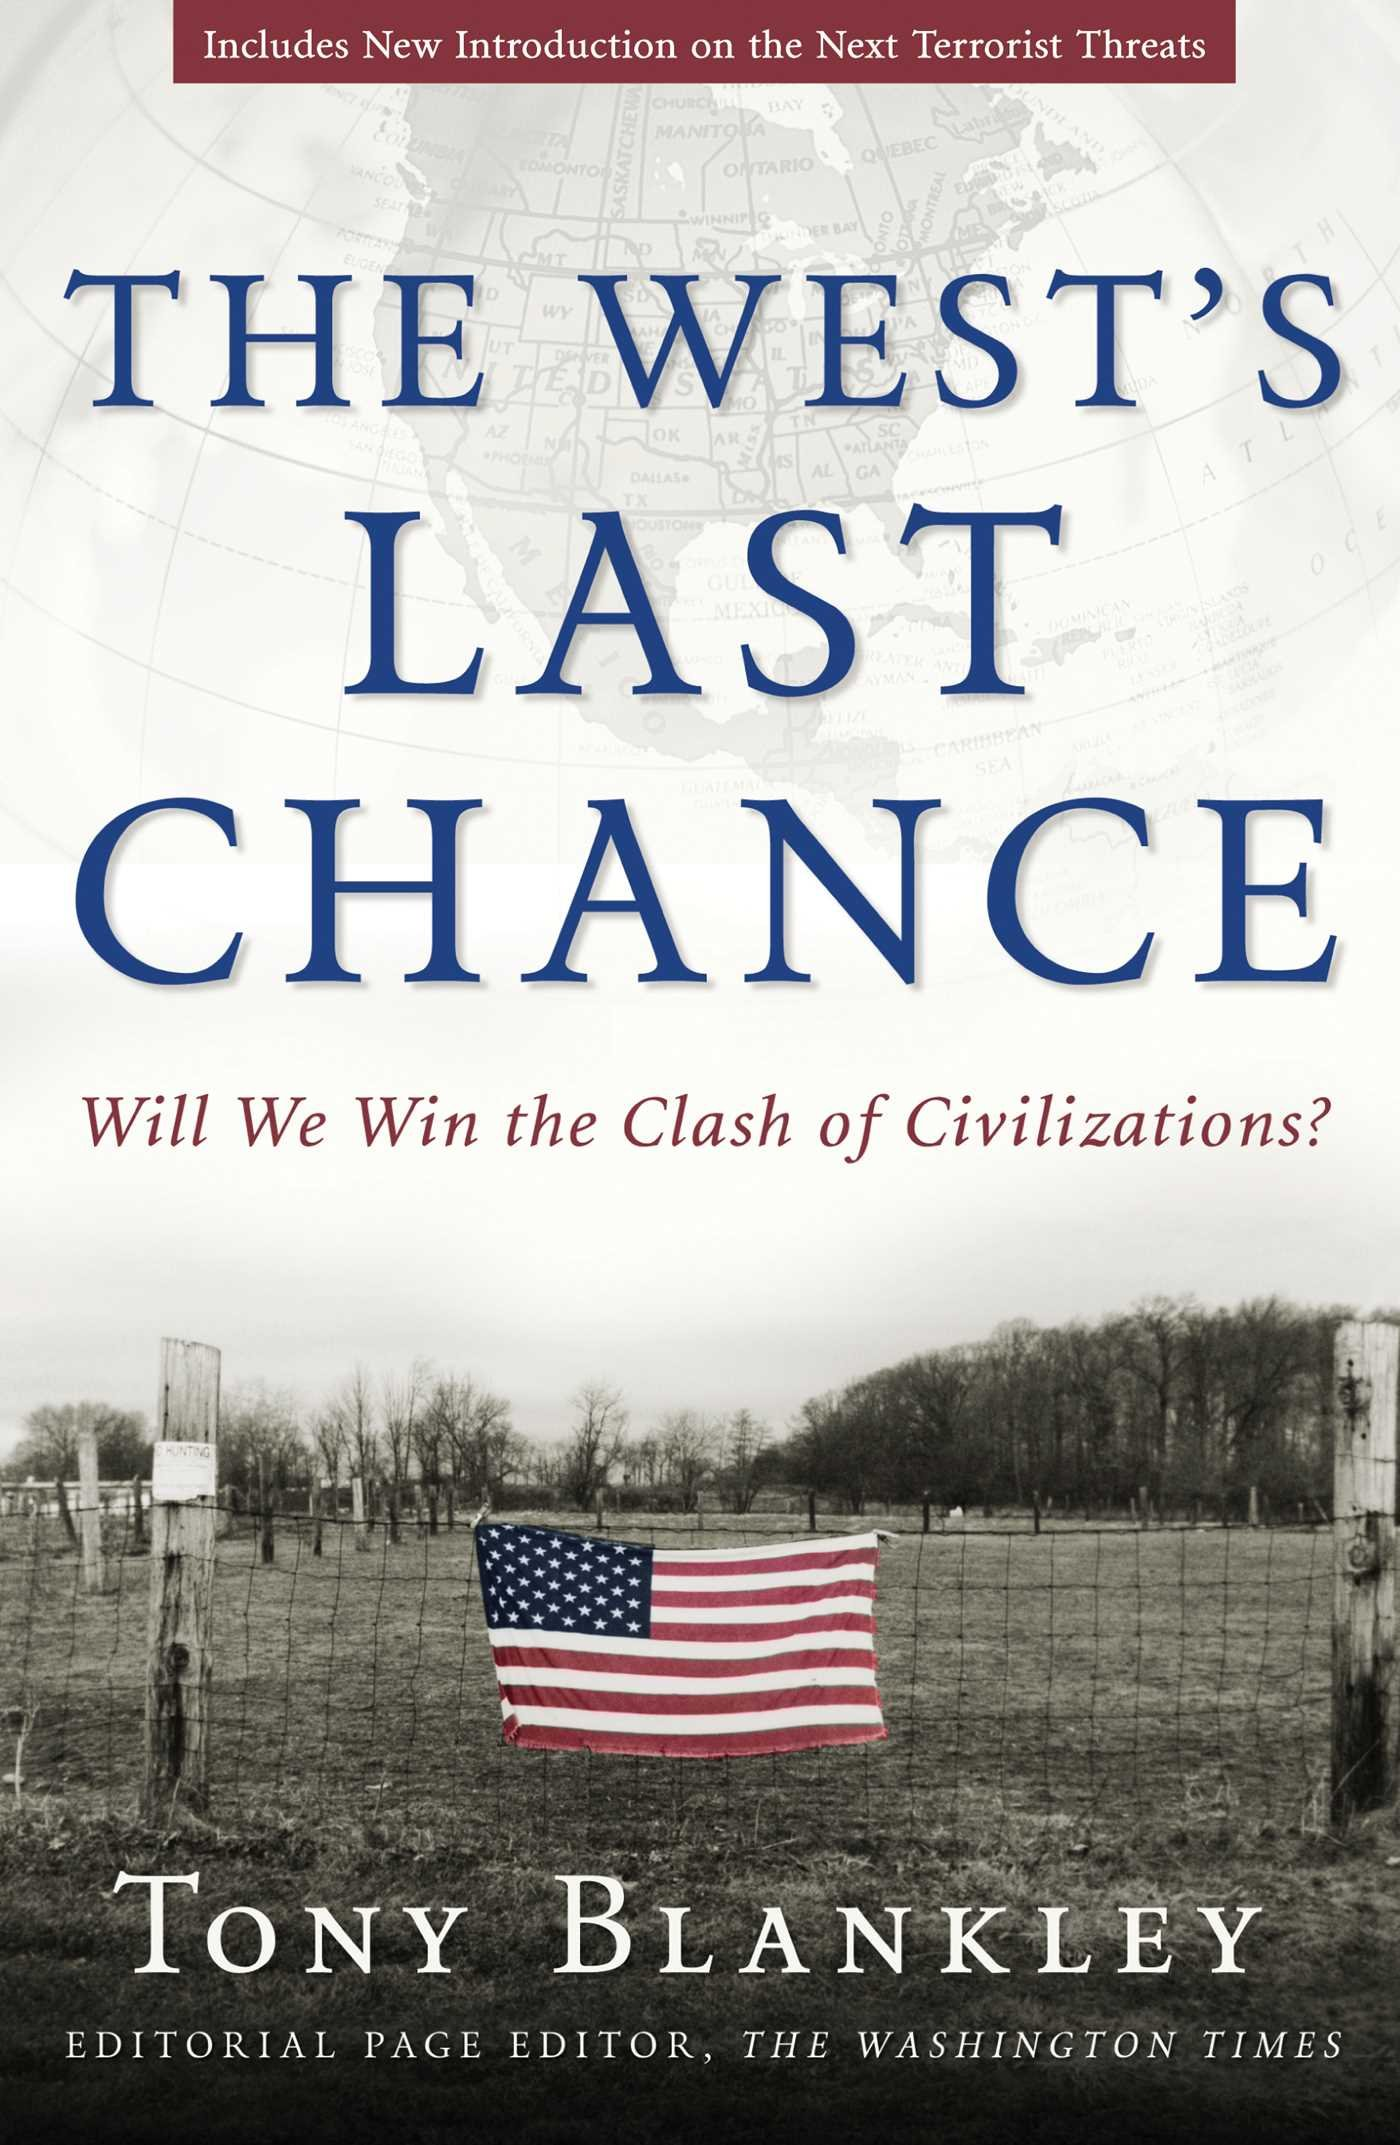 The Wests Last Chance: Will We Win the Clash of Civilizations?